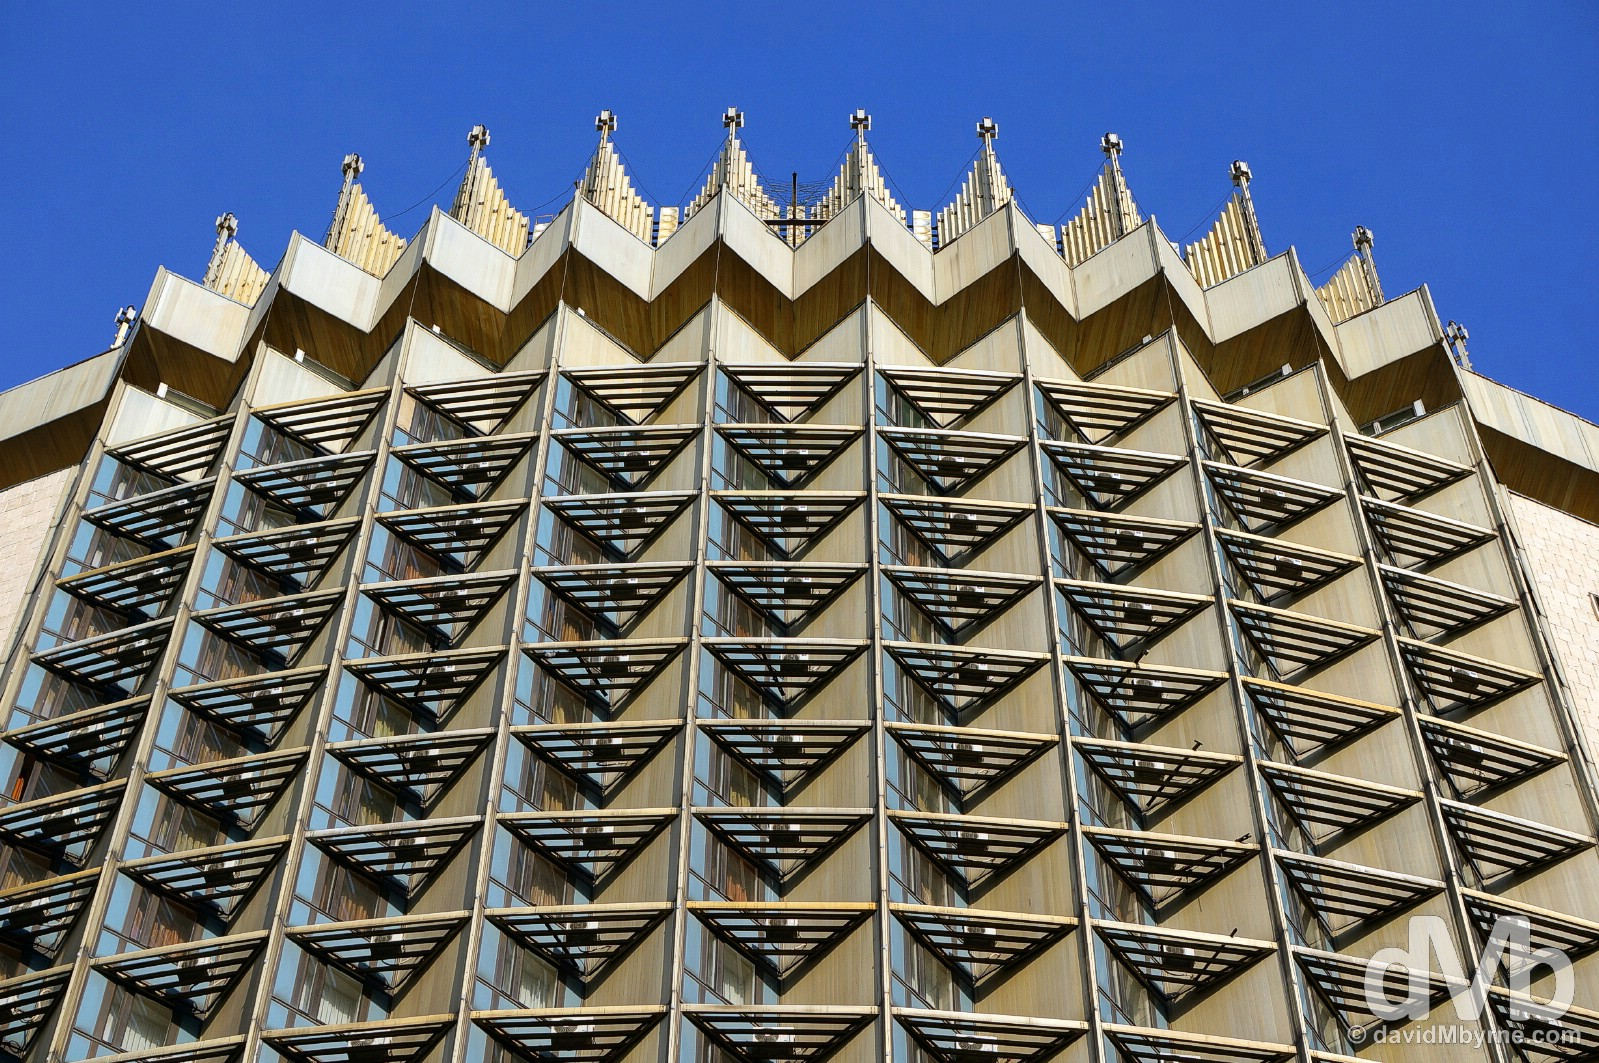 The upper floors of Hotel Kazakhstan in Almaty, Kazakhstan. February 21, 2015.